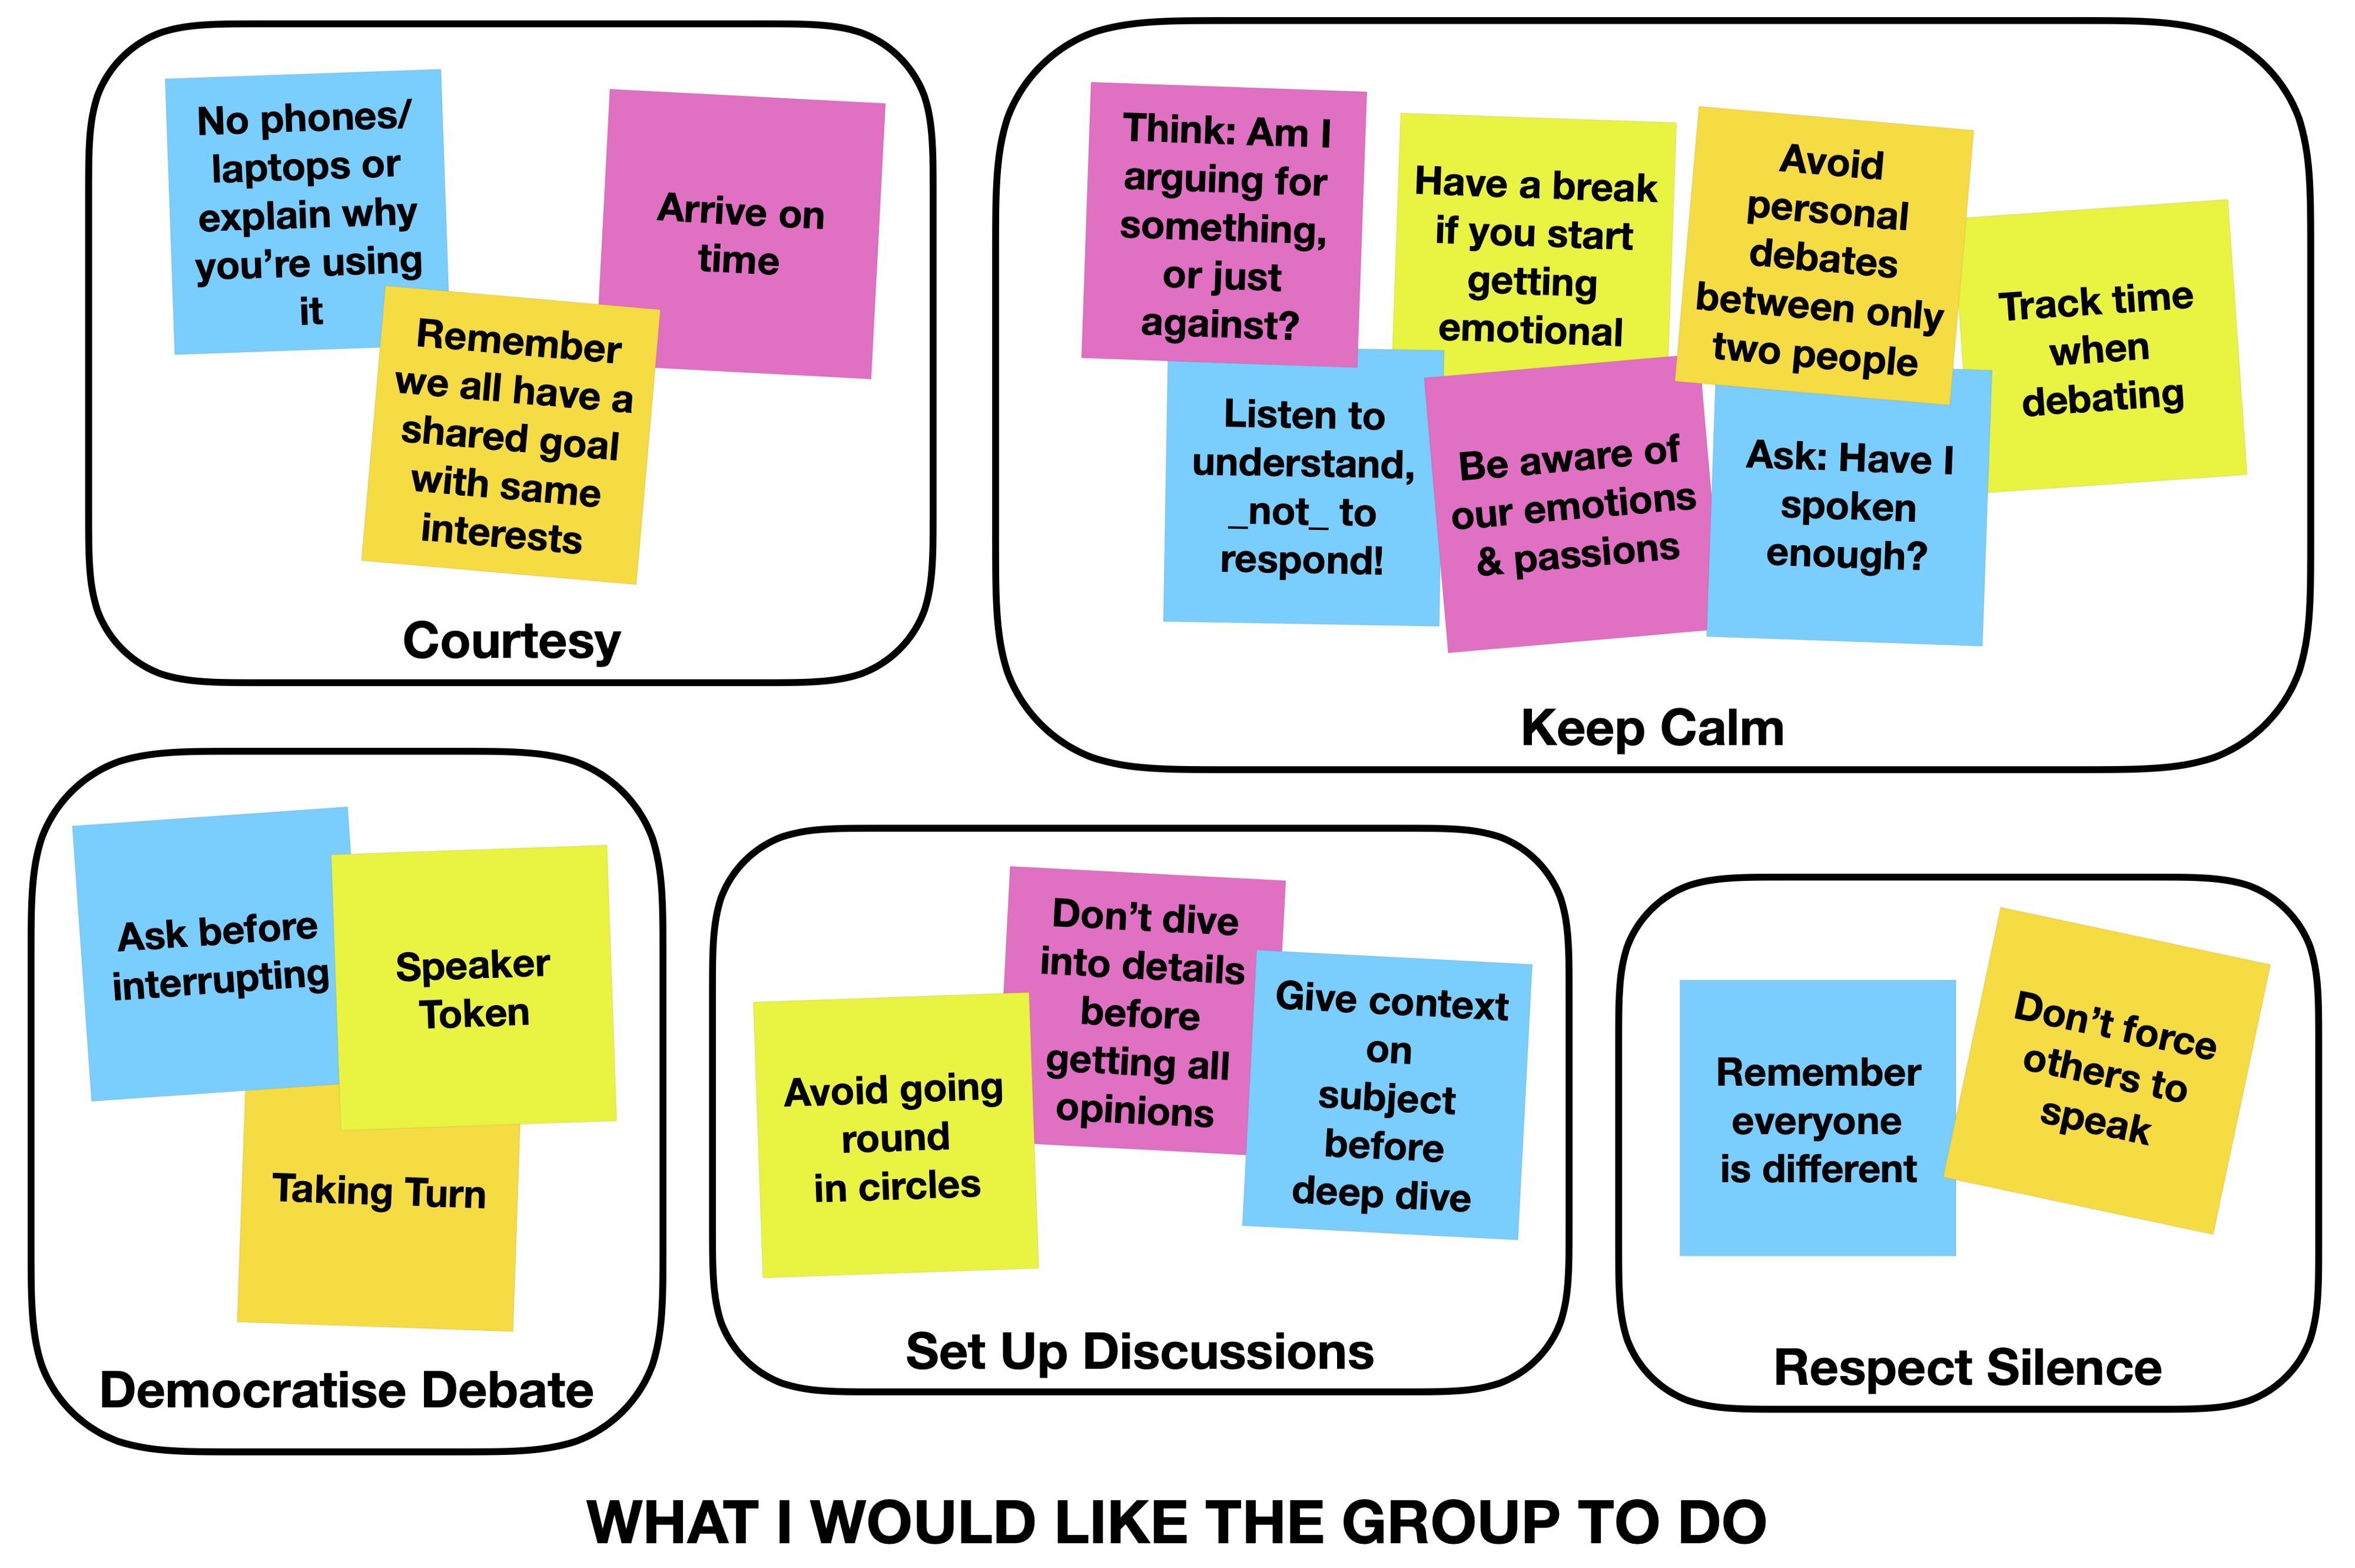 What I would like the group to do—keep calm, democratise debate, set up discussions, be courteous, respect silence